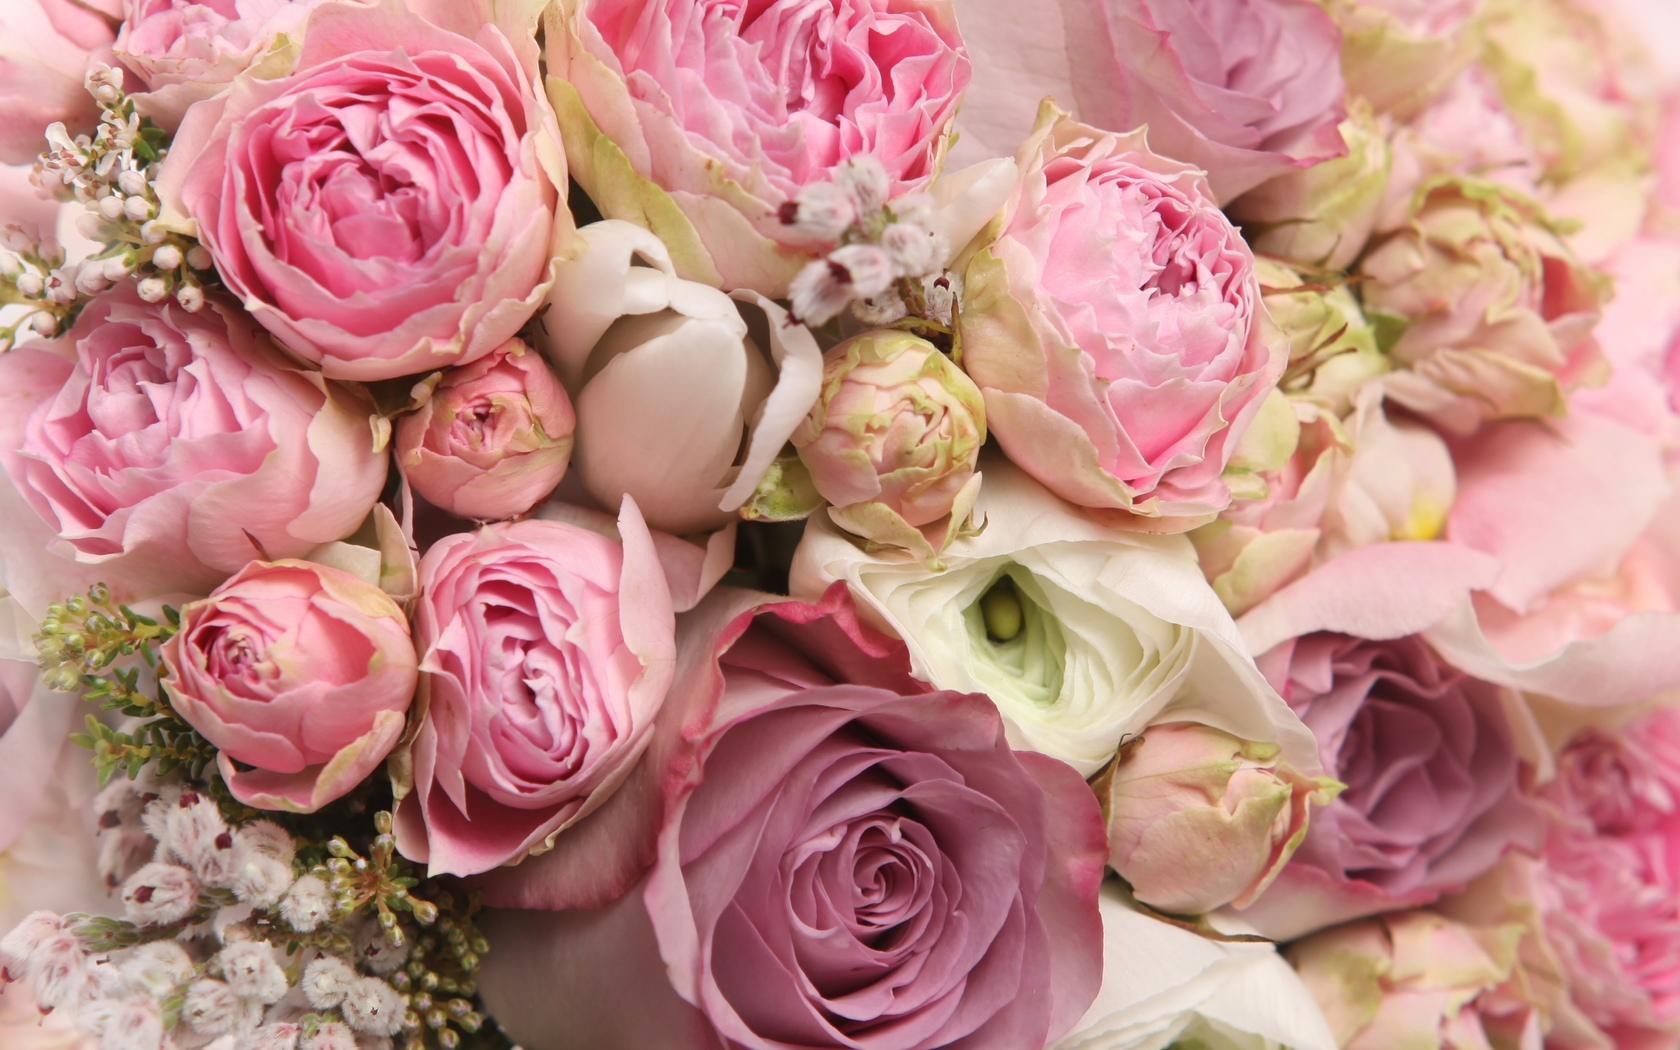 bouquet, flowers, pretty, cool, flower, lovely, rose, i love you, beautiful, nice, roses, beauty